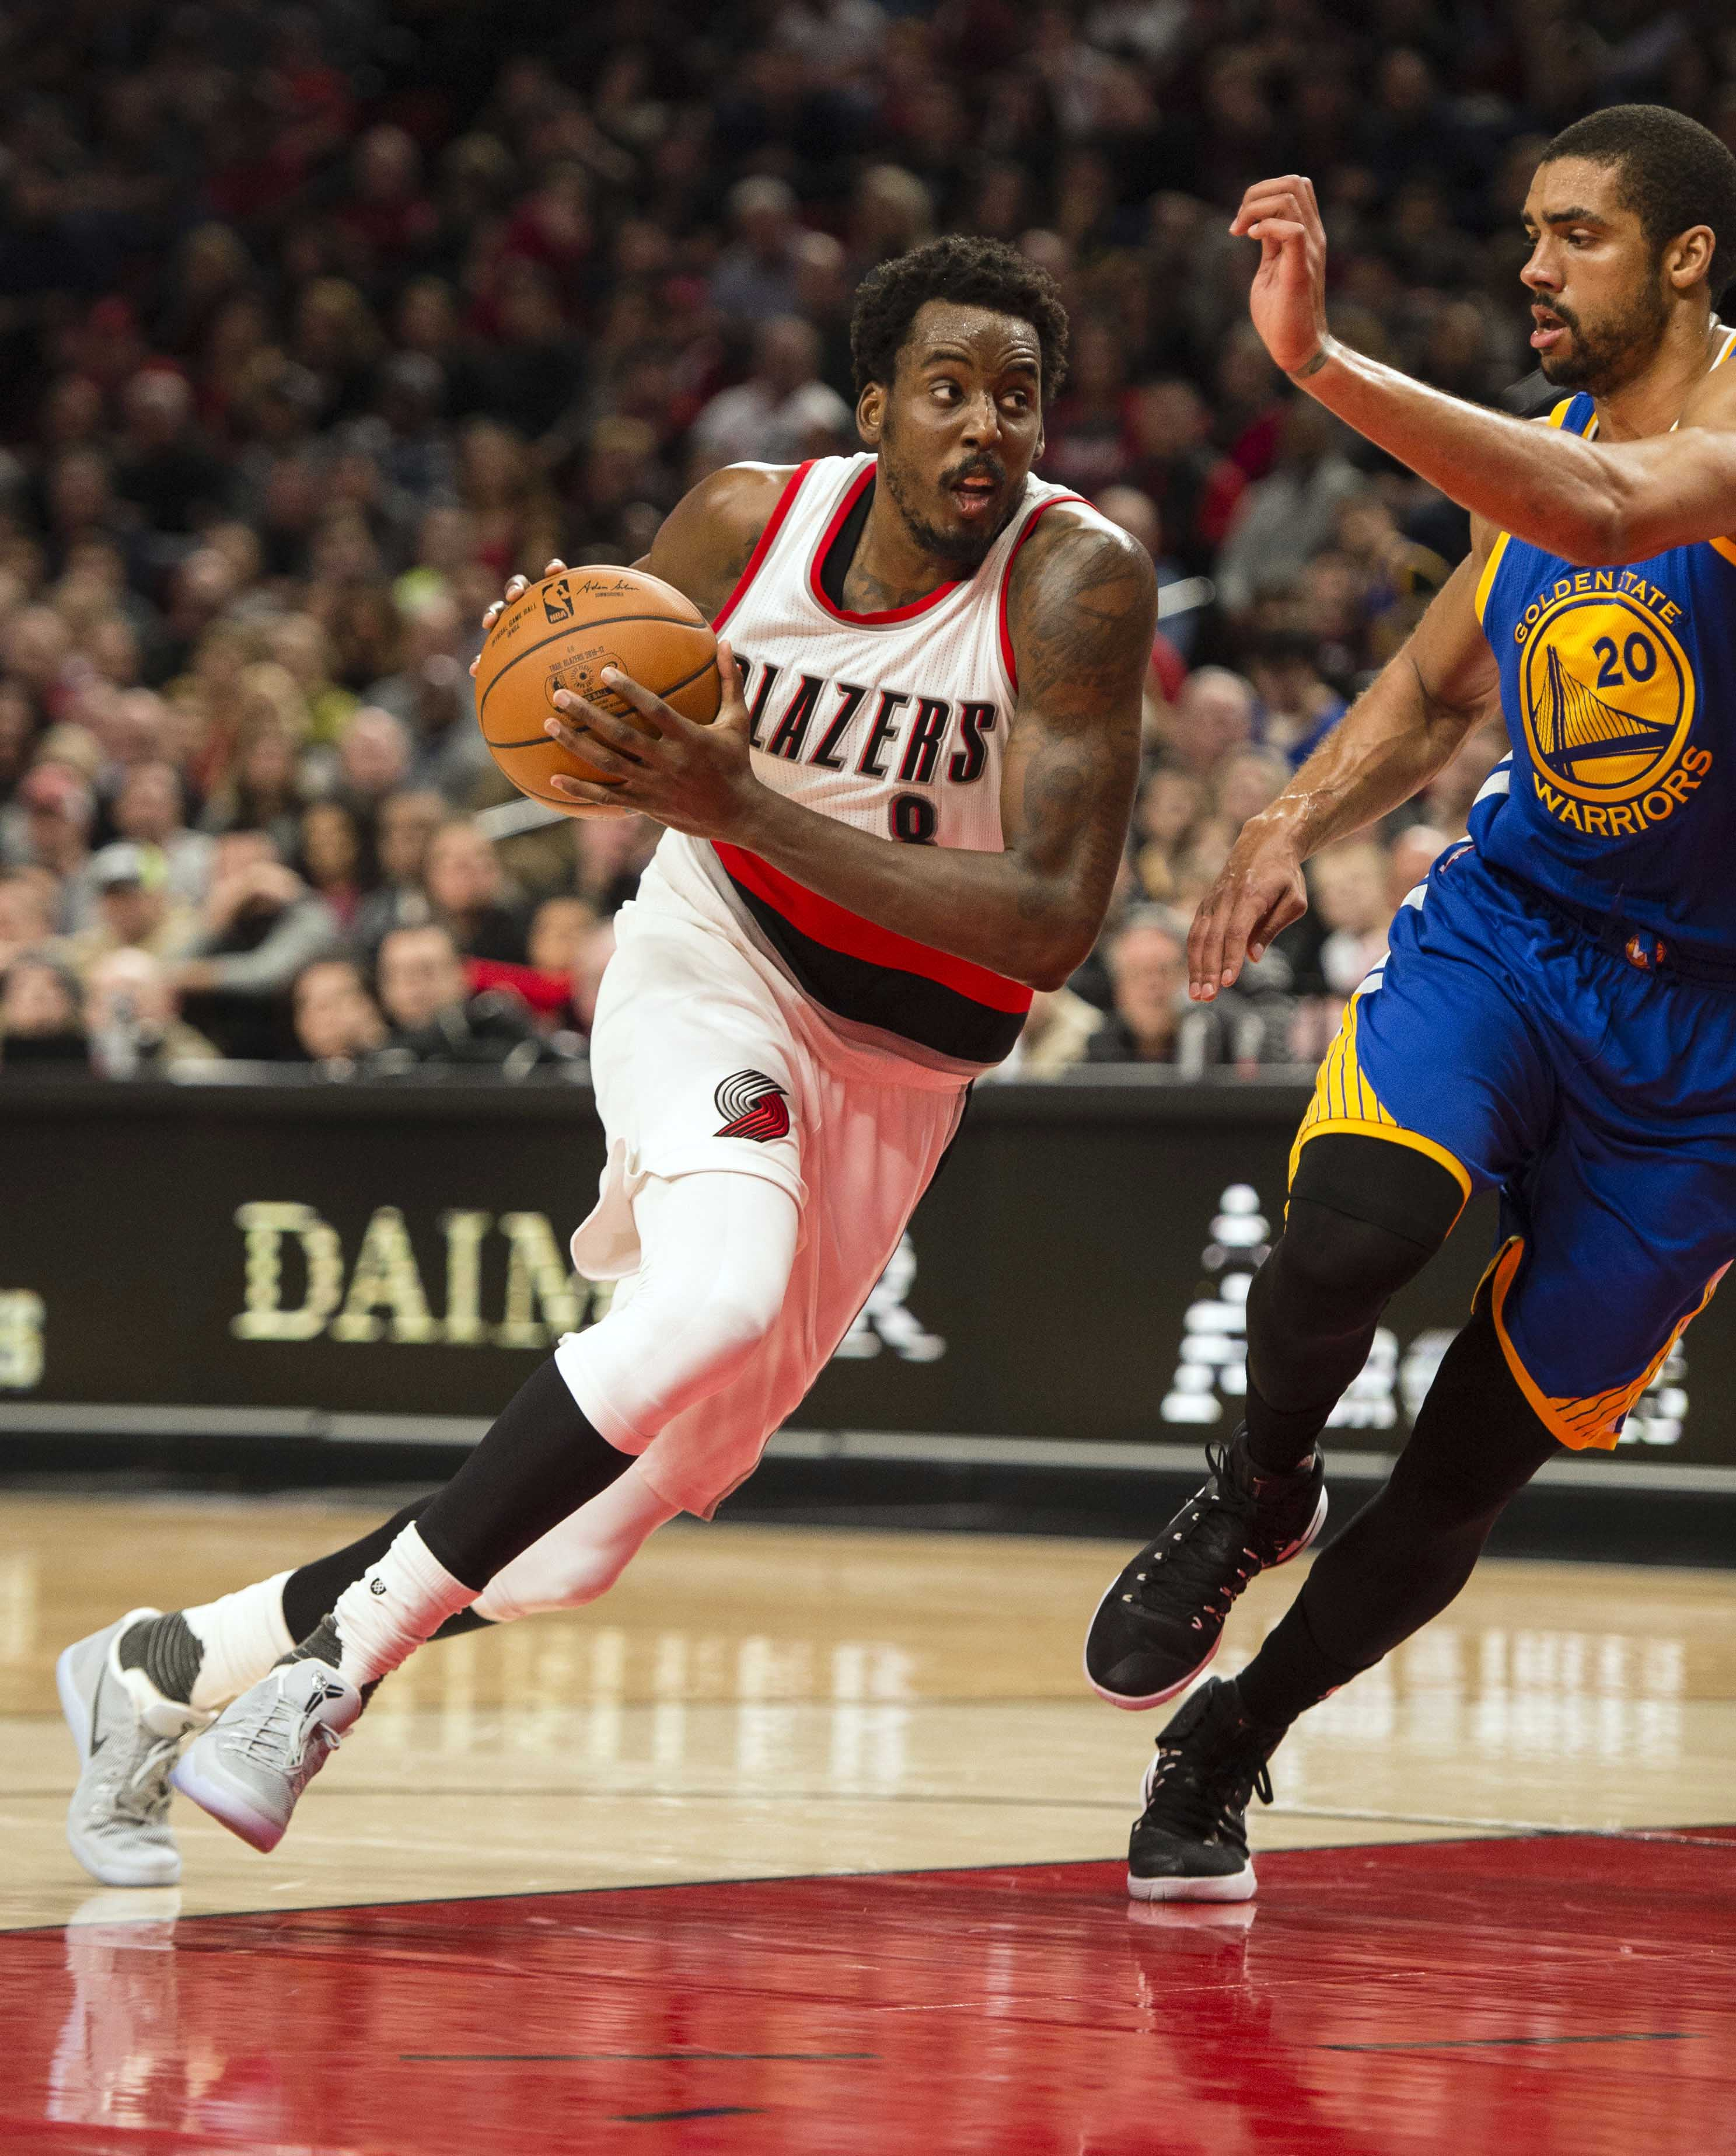 Portland Trail Blazers Golden State Warriors: The Trail Blazers Five By Five Part 2